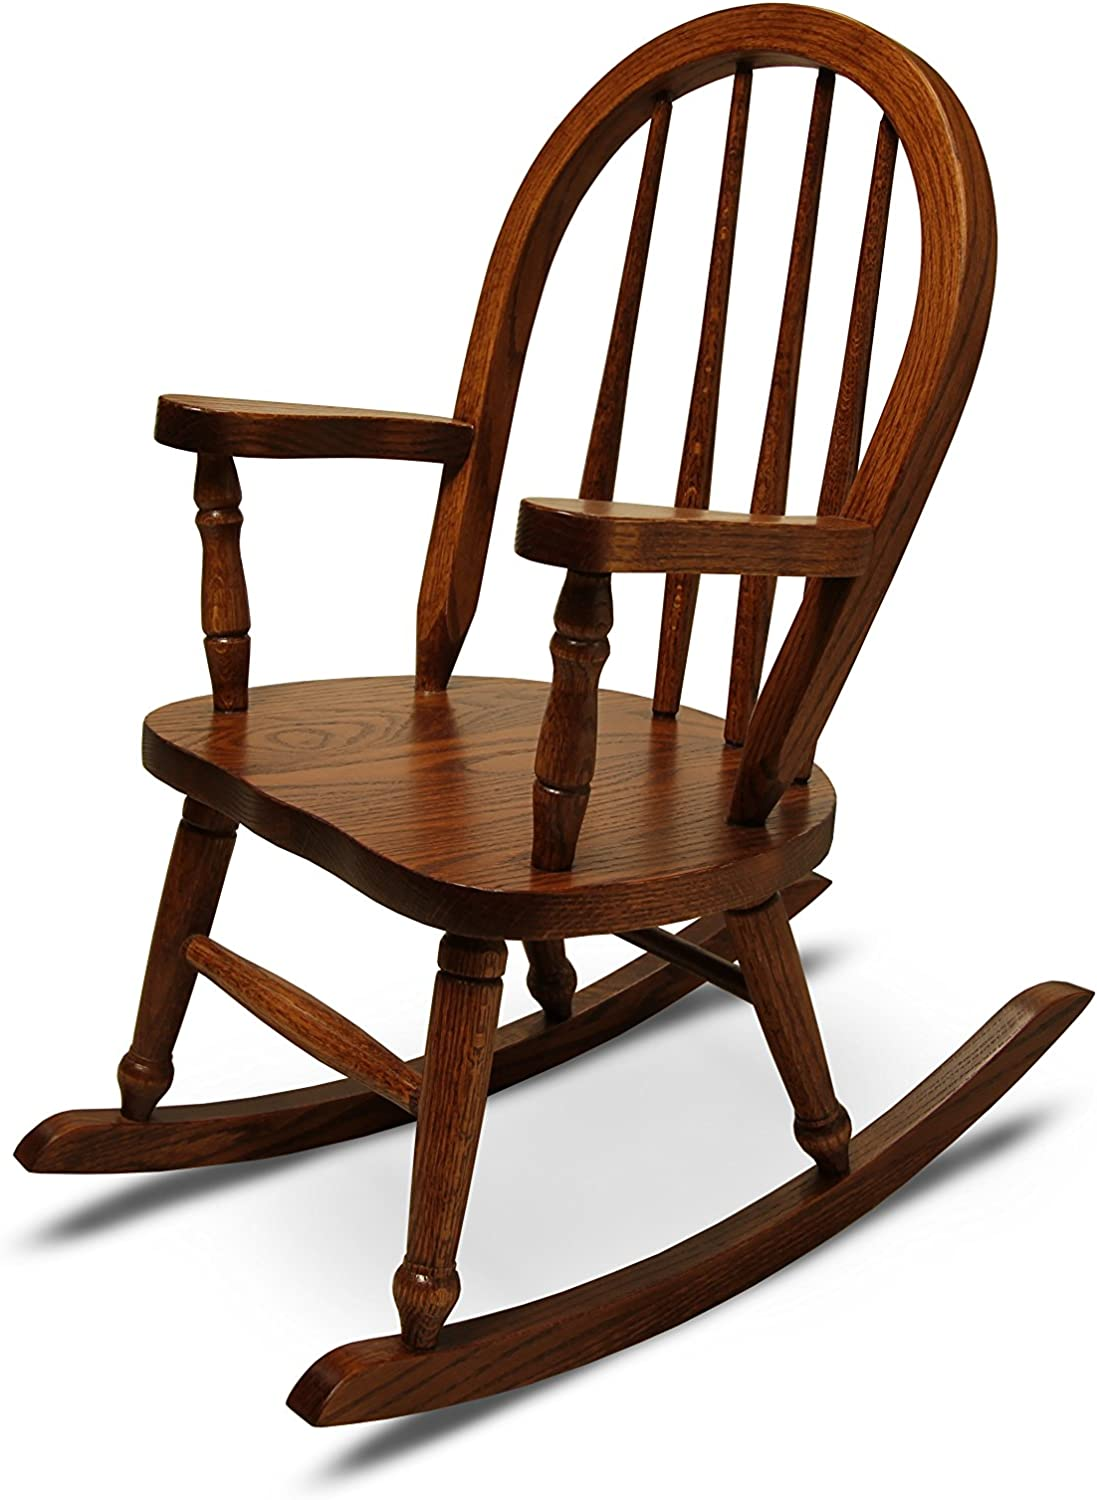 Weaver Craft Child's Rocking Chair Amish Made (Michaels Stain) - Fully Assembled